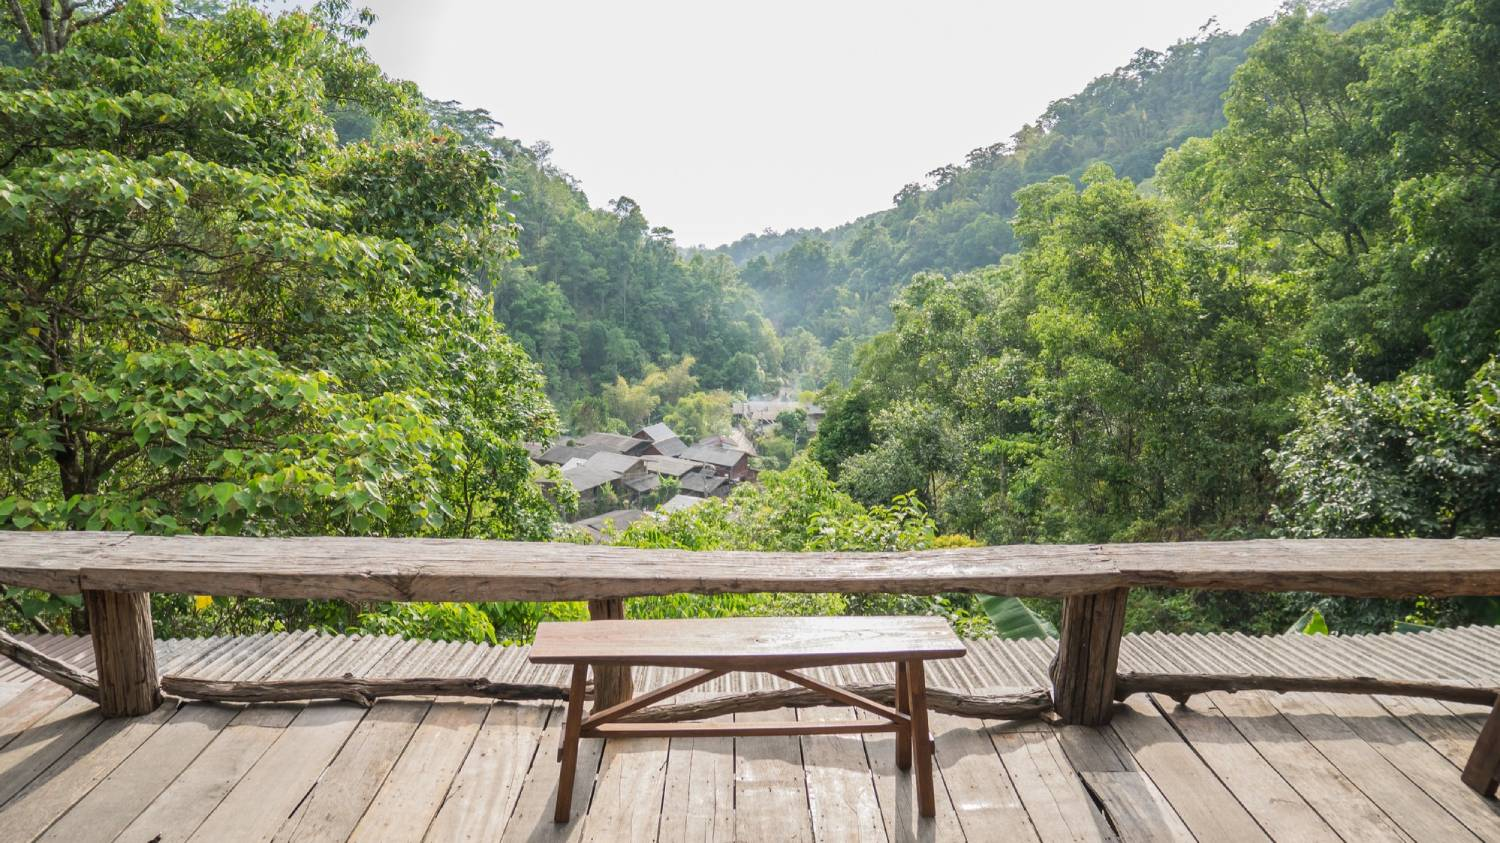 Mae Kampong Village - Things To Do In Chiang Mai